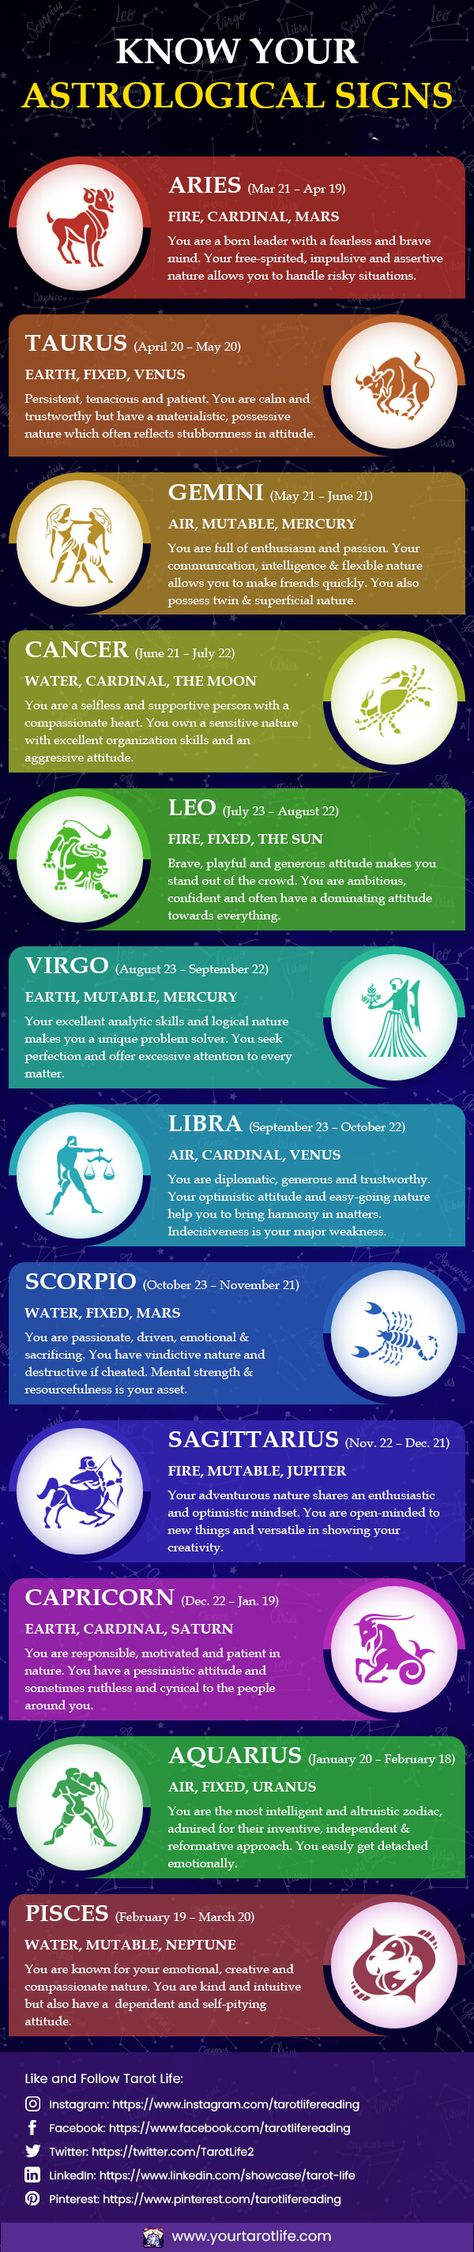 Read on to know the hidden meanings behind all Astrological Signs which are also known as Zodiac Signs and let's understand their significance in Astrology. #astrologicalsigns #astrology #tarotlife #astrologyprediction #astrologyforfuturepredictions #onlineastrology #onlineastrologyreading #astrologyreadingbydateofbirth #accurateastrologyprediction #birthchart #astrologybydateofbirth #typesofastrology #astrologychart @significanceofastrology